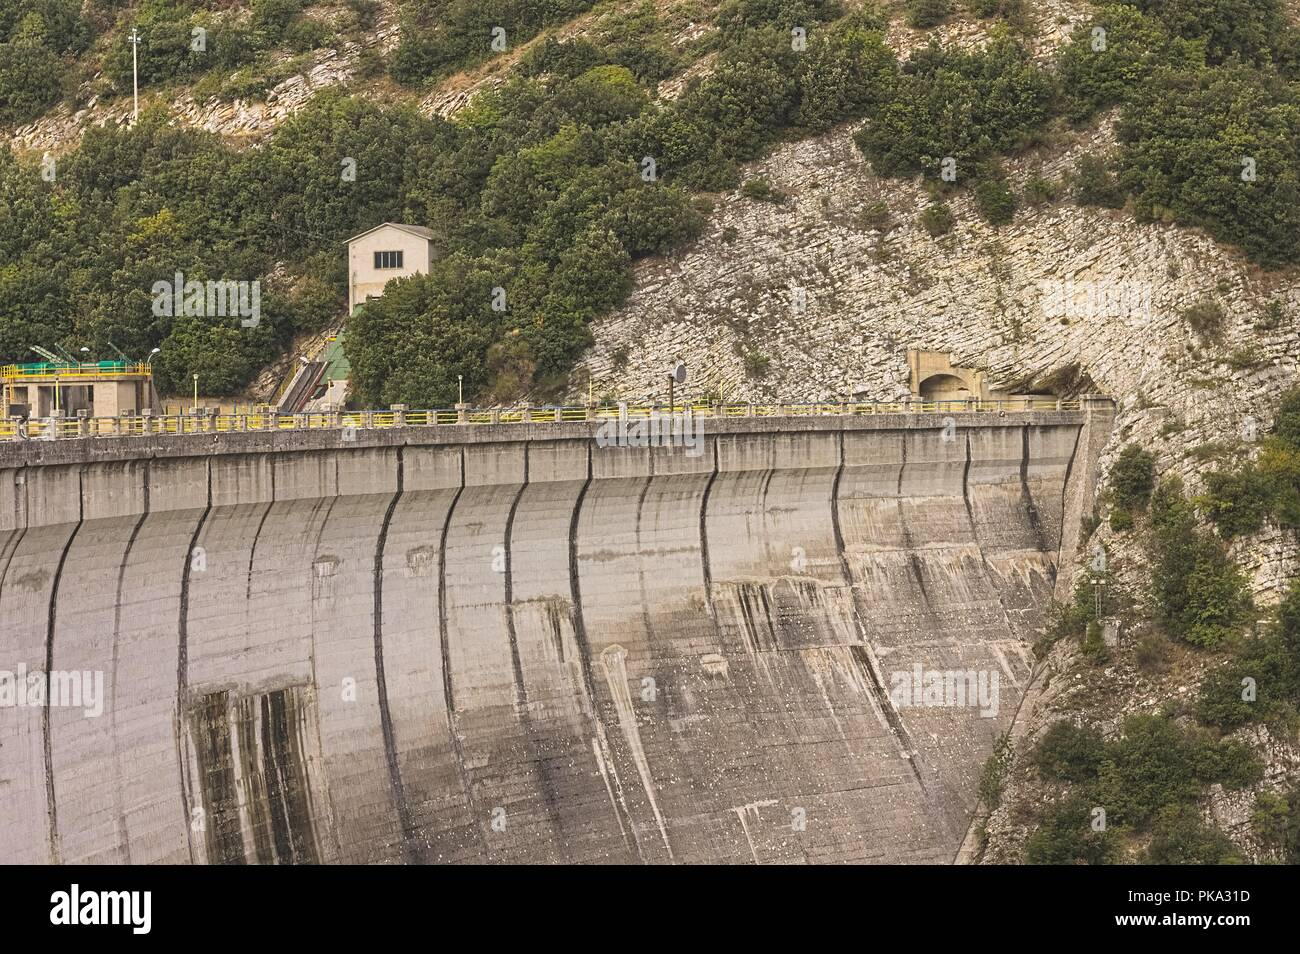 Dike of the Fiastra Lake (Sibillini Mountains, Marche, Italy) - Stock Image